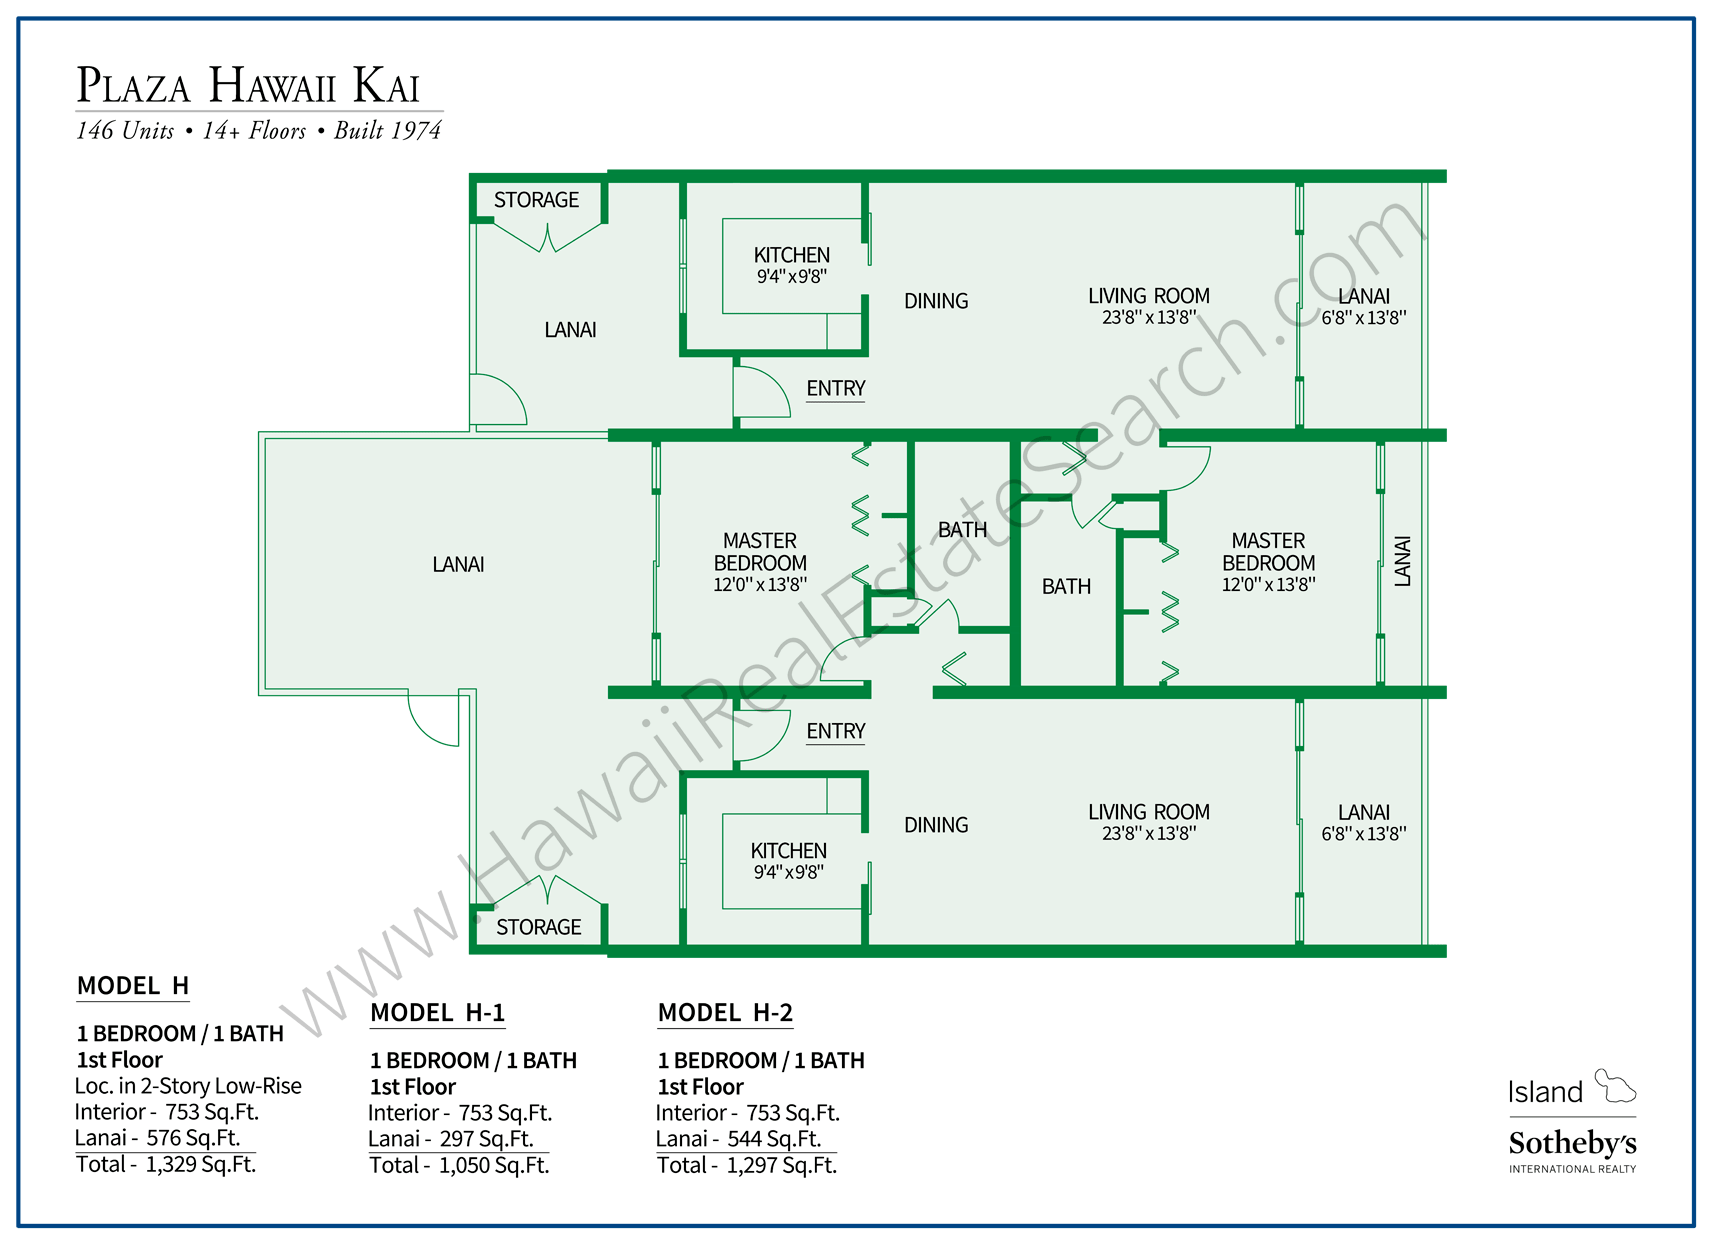 Plaza Hawaii Kai Floor Plan H